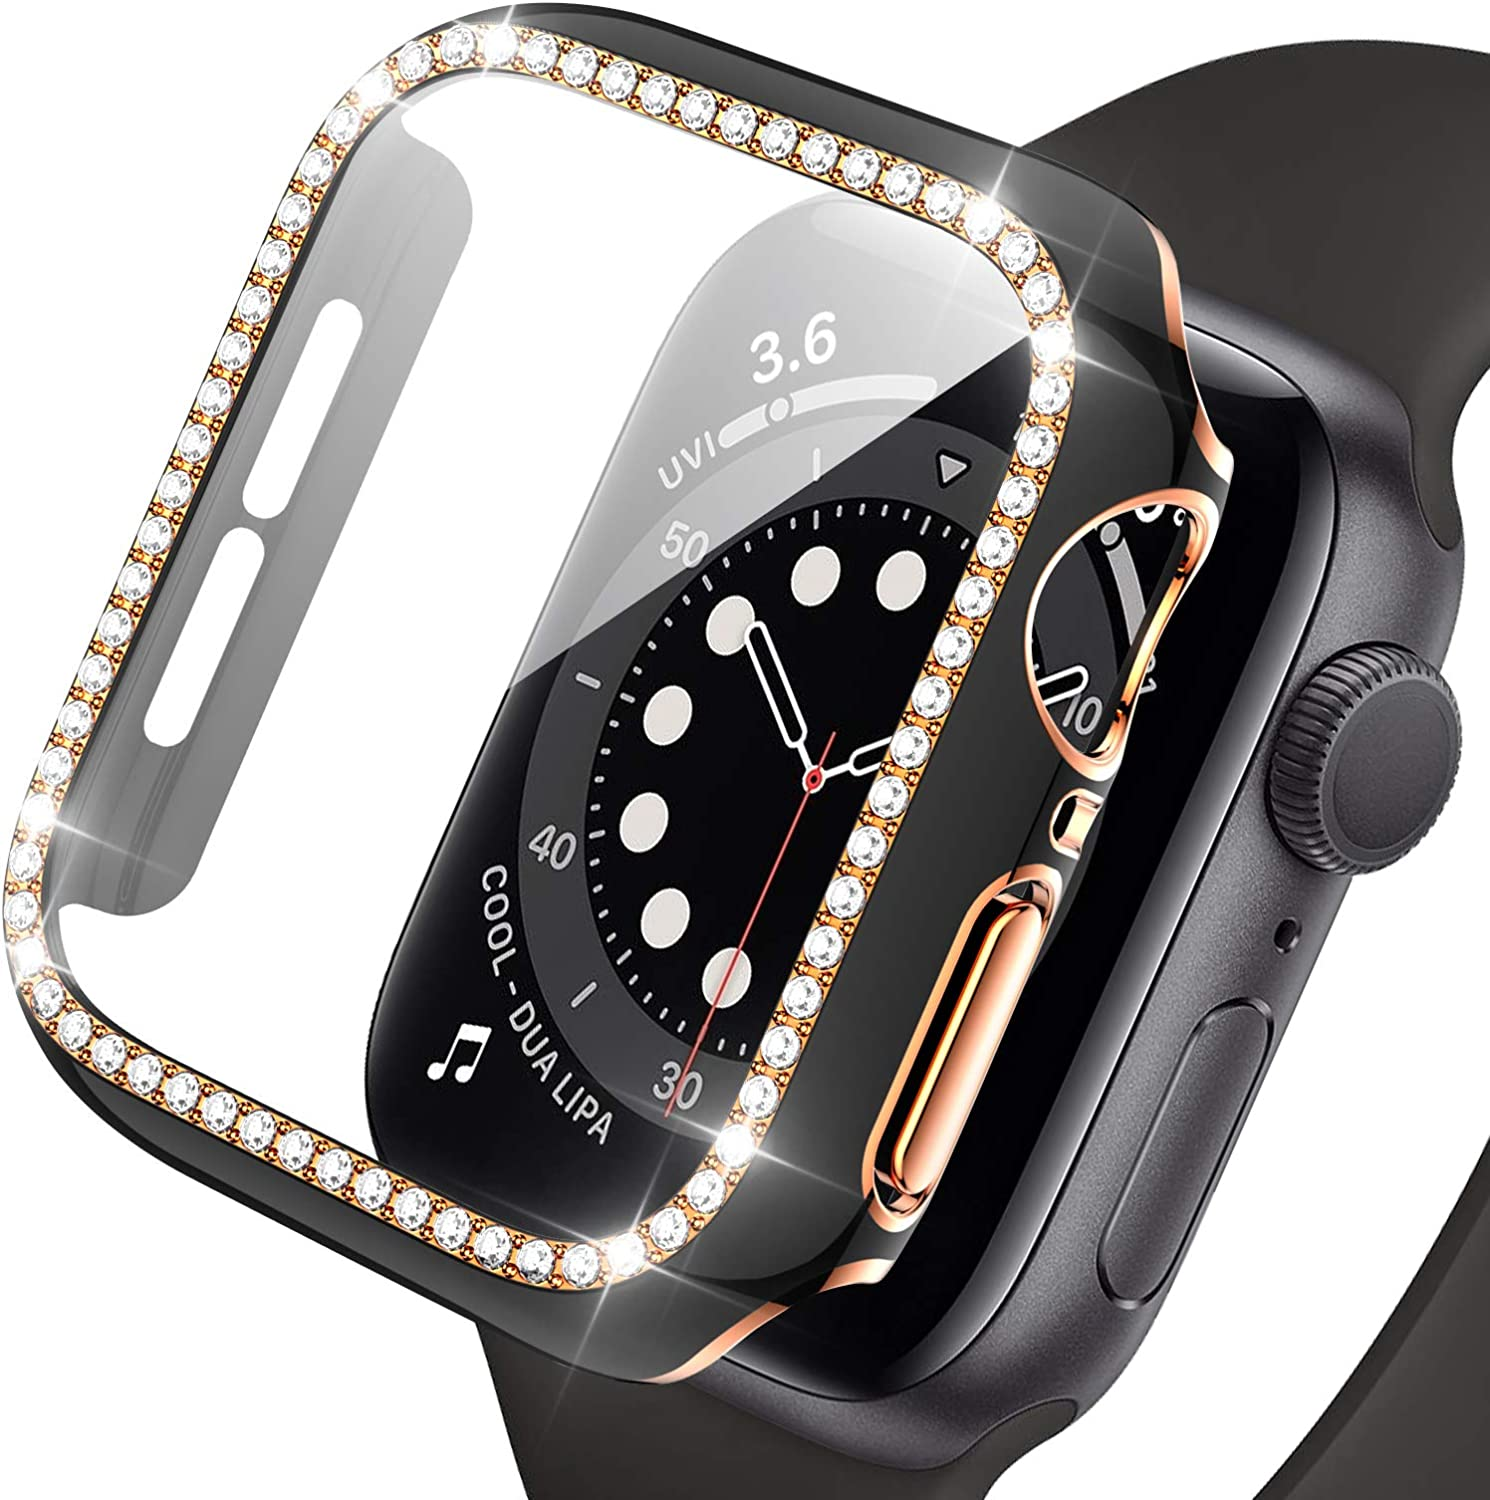 Haojavo Apple Watch Case with Screen Protector for Apple Watch Series 6/5/4/SE 44mm, New 3D Full Cover Crystal Bling Diamond Rhinestone Ultra-Thin Bumper Protective Case for iWatch 44mm Accessories